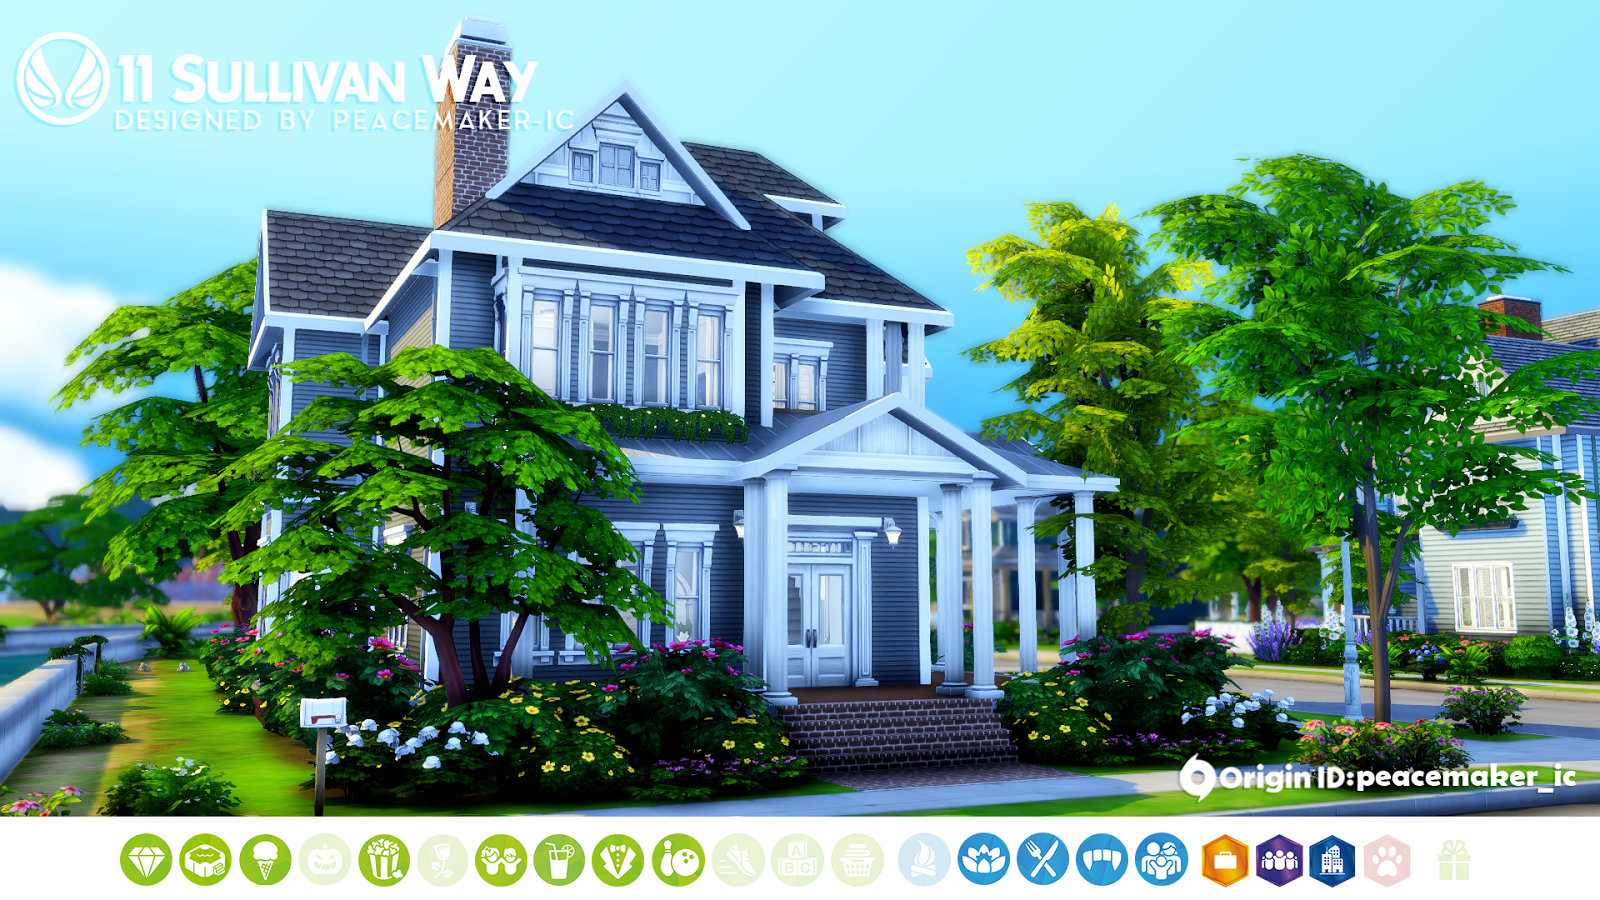 Simsational designs welcome to davenporte willow creek for Willow creek designs